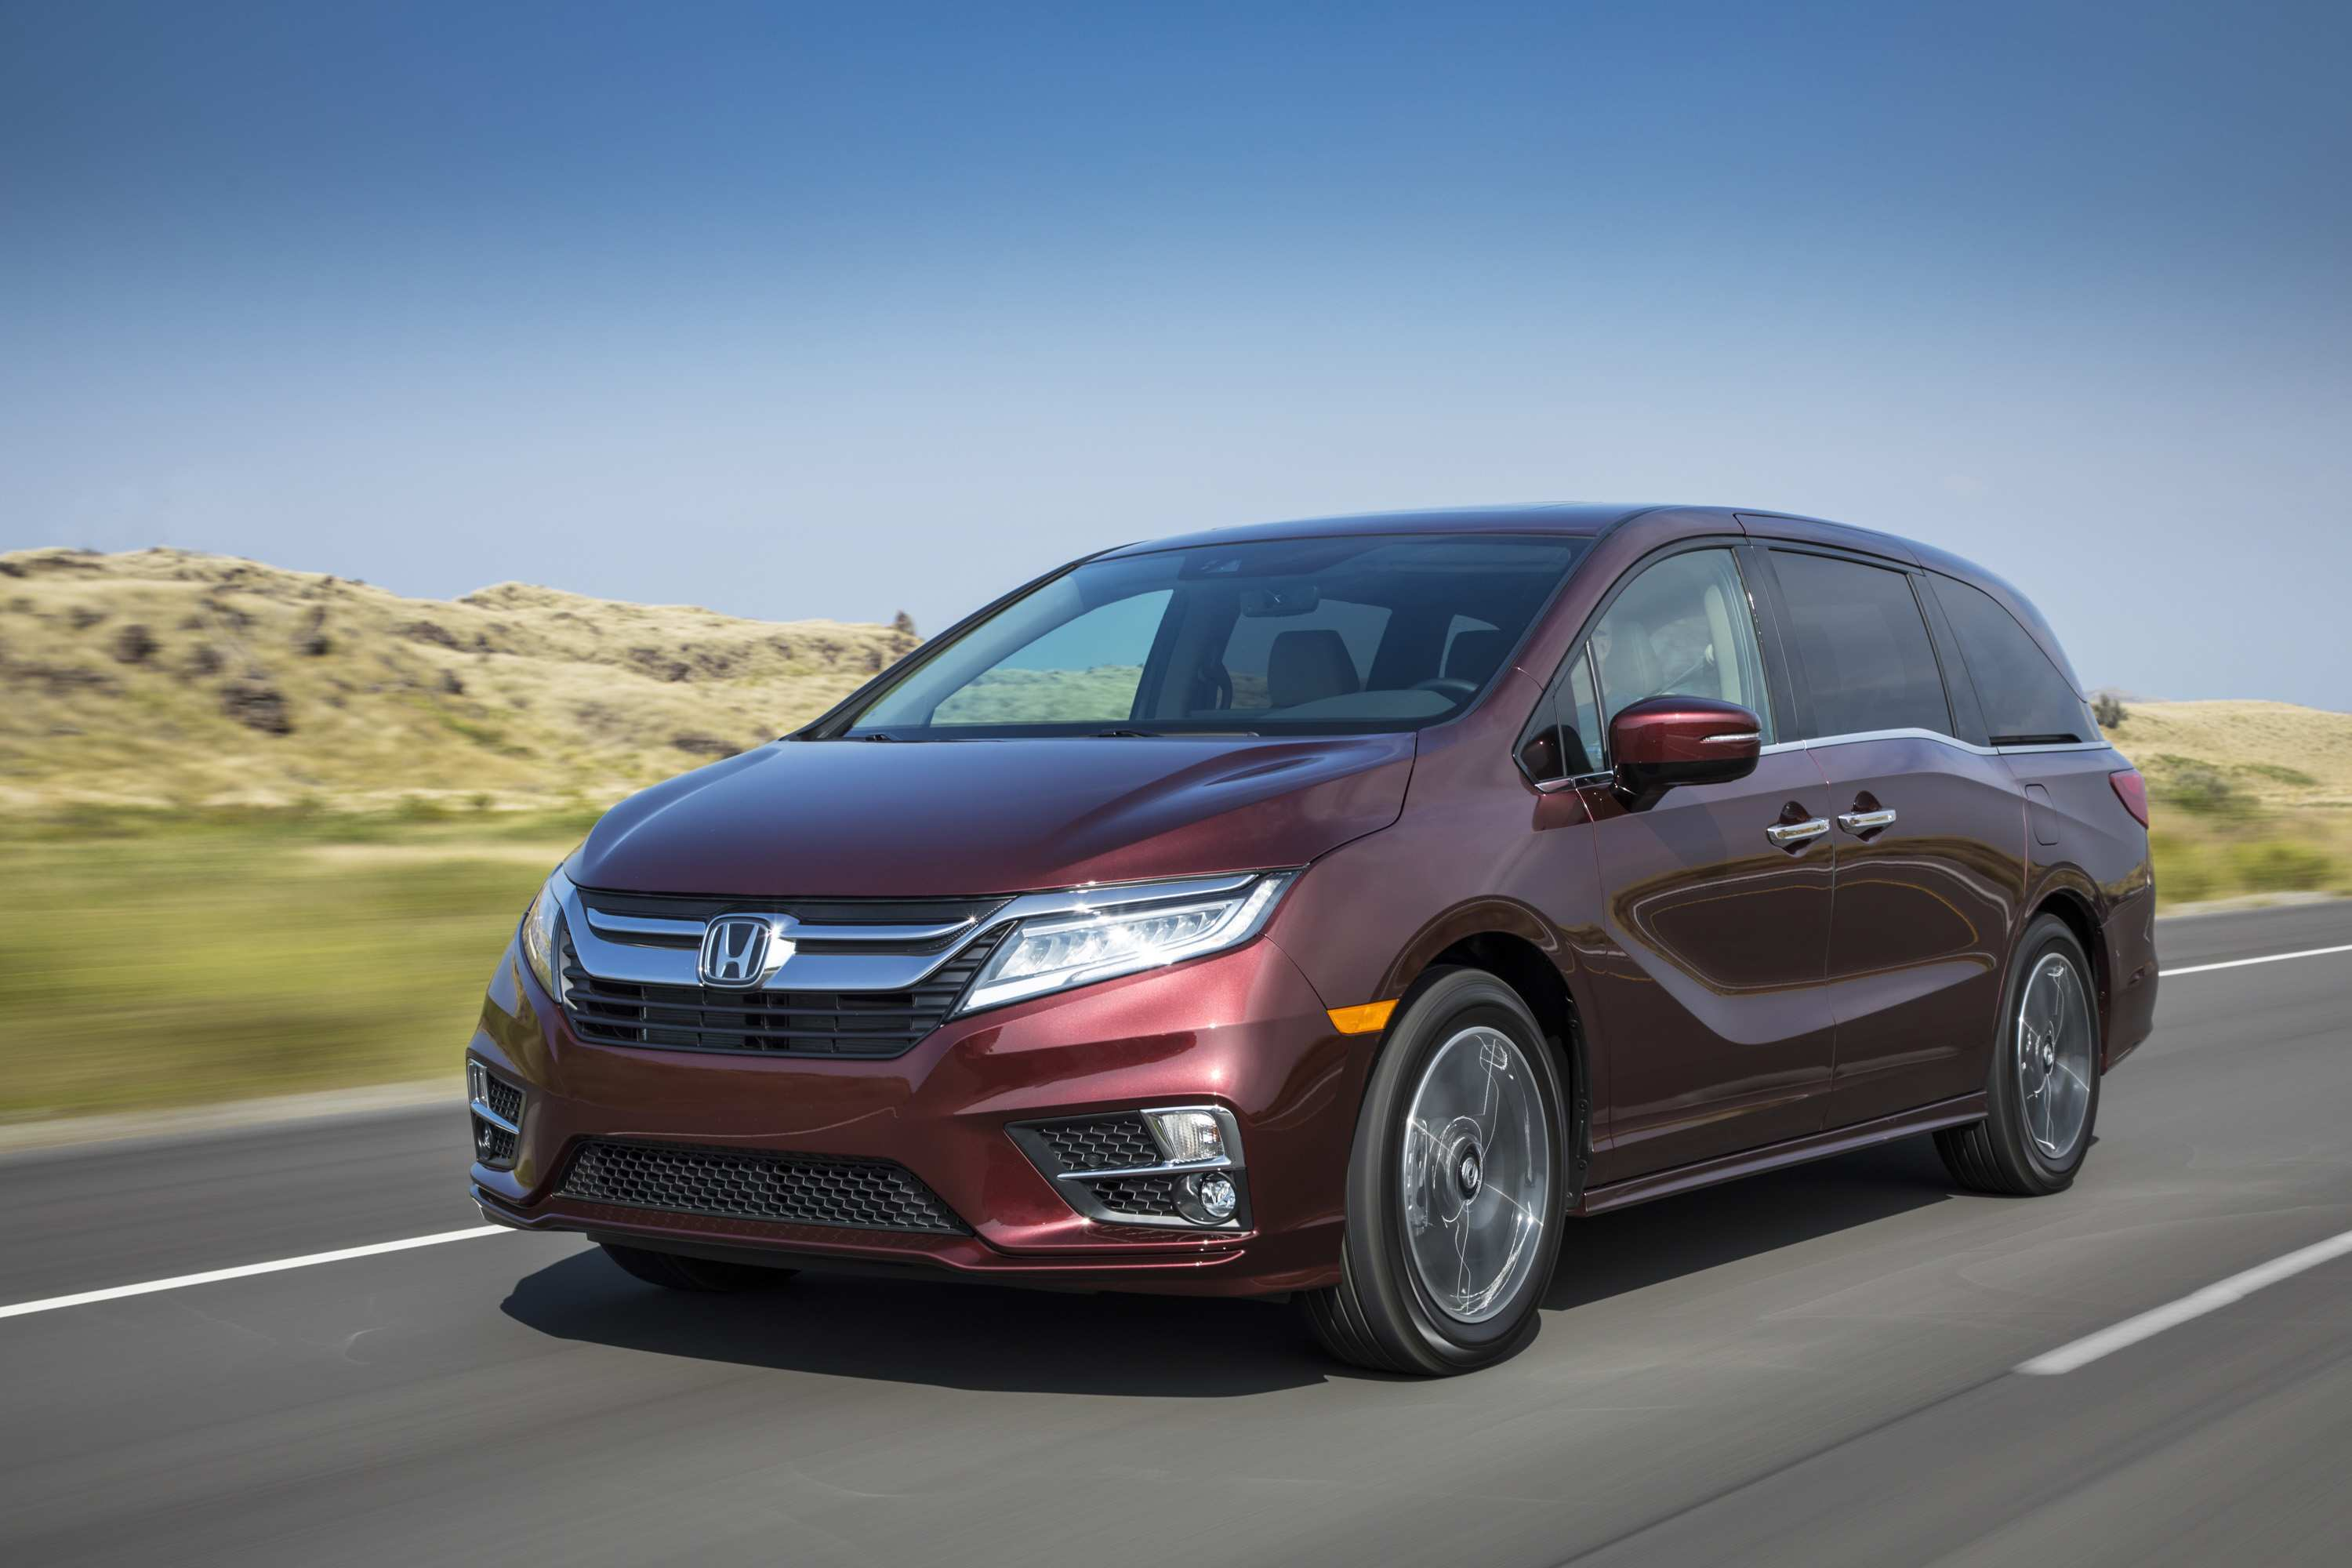 76 Great Honda Odyssey 2019 Australia Specs and Review with Honda Odyssey 2019 Australia